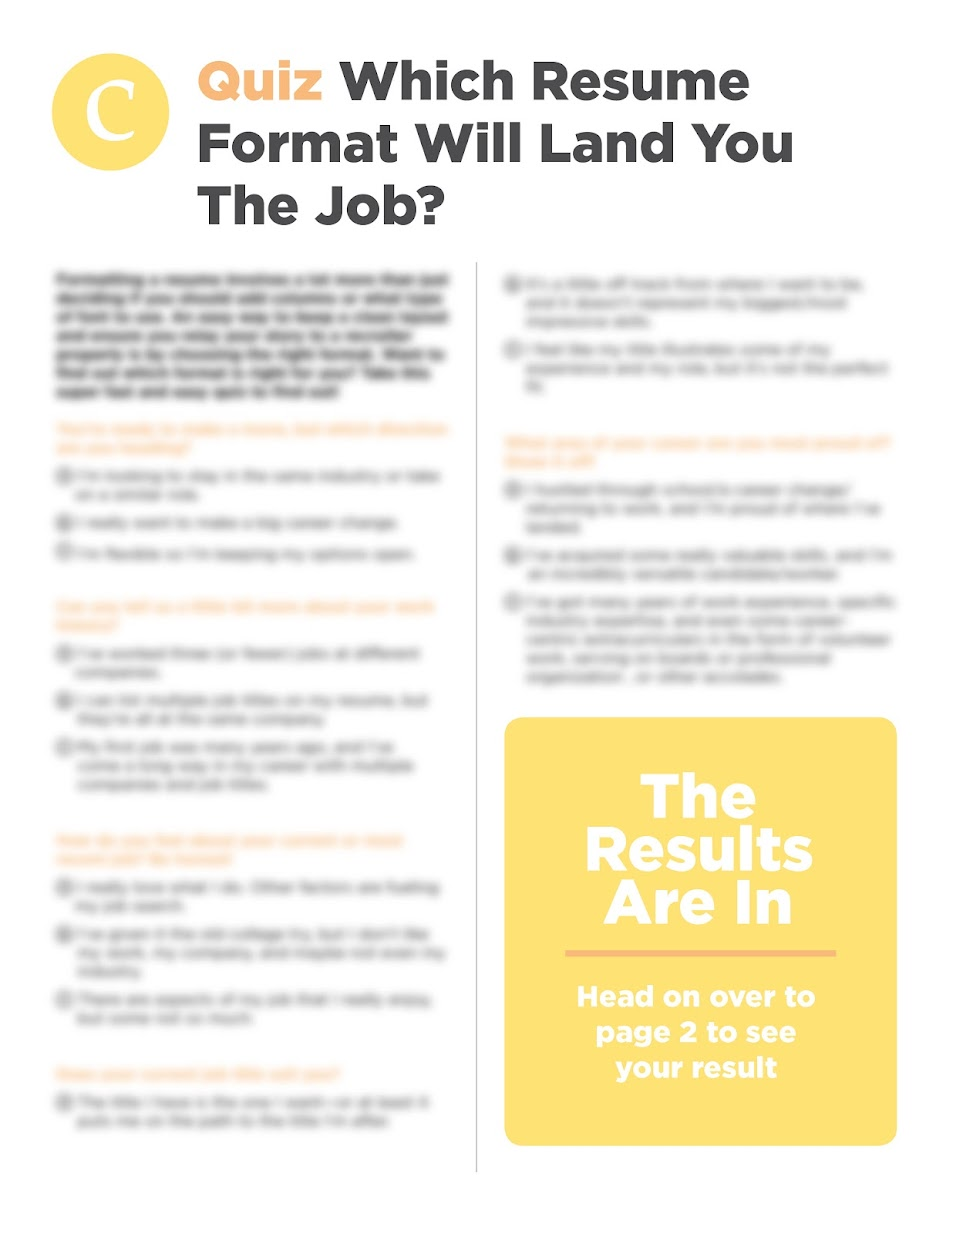 You Can Completely Revive Your Resume In 5 Minutes Or Less With This Quiz